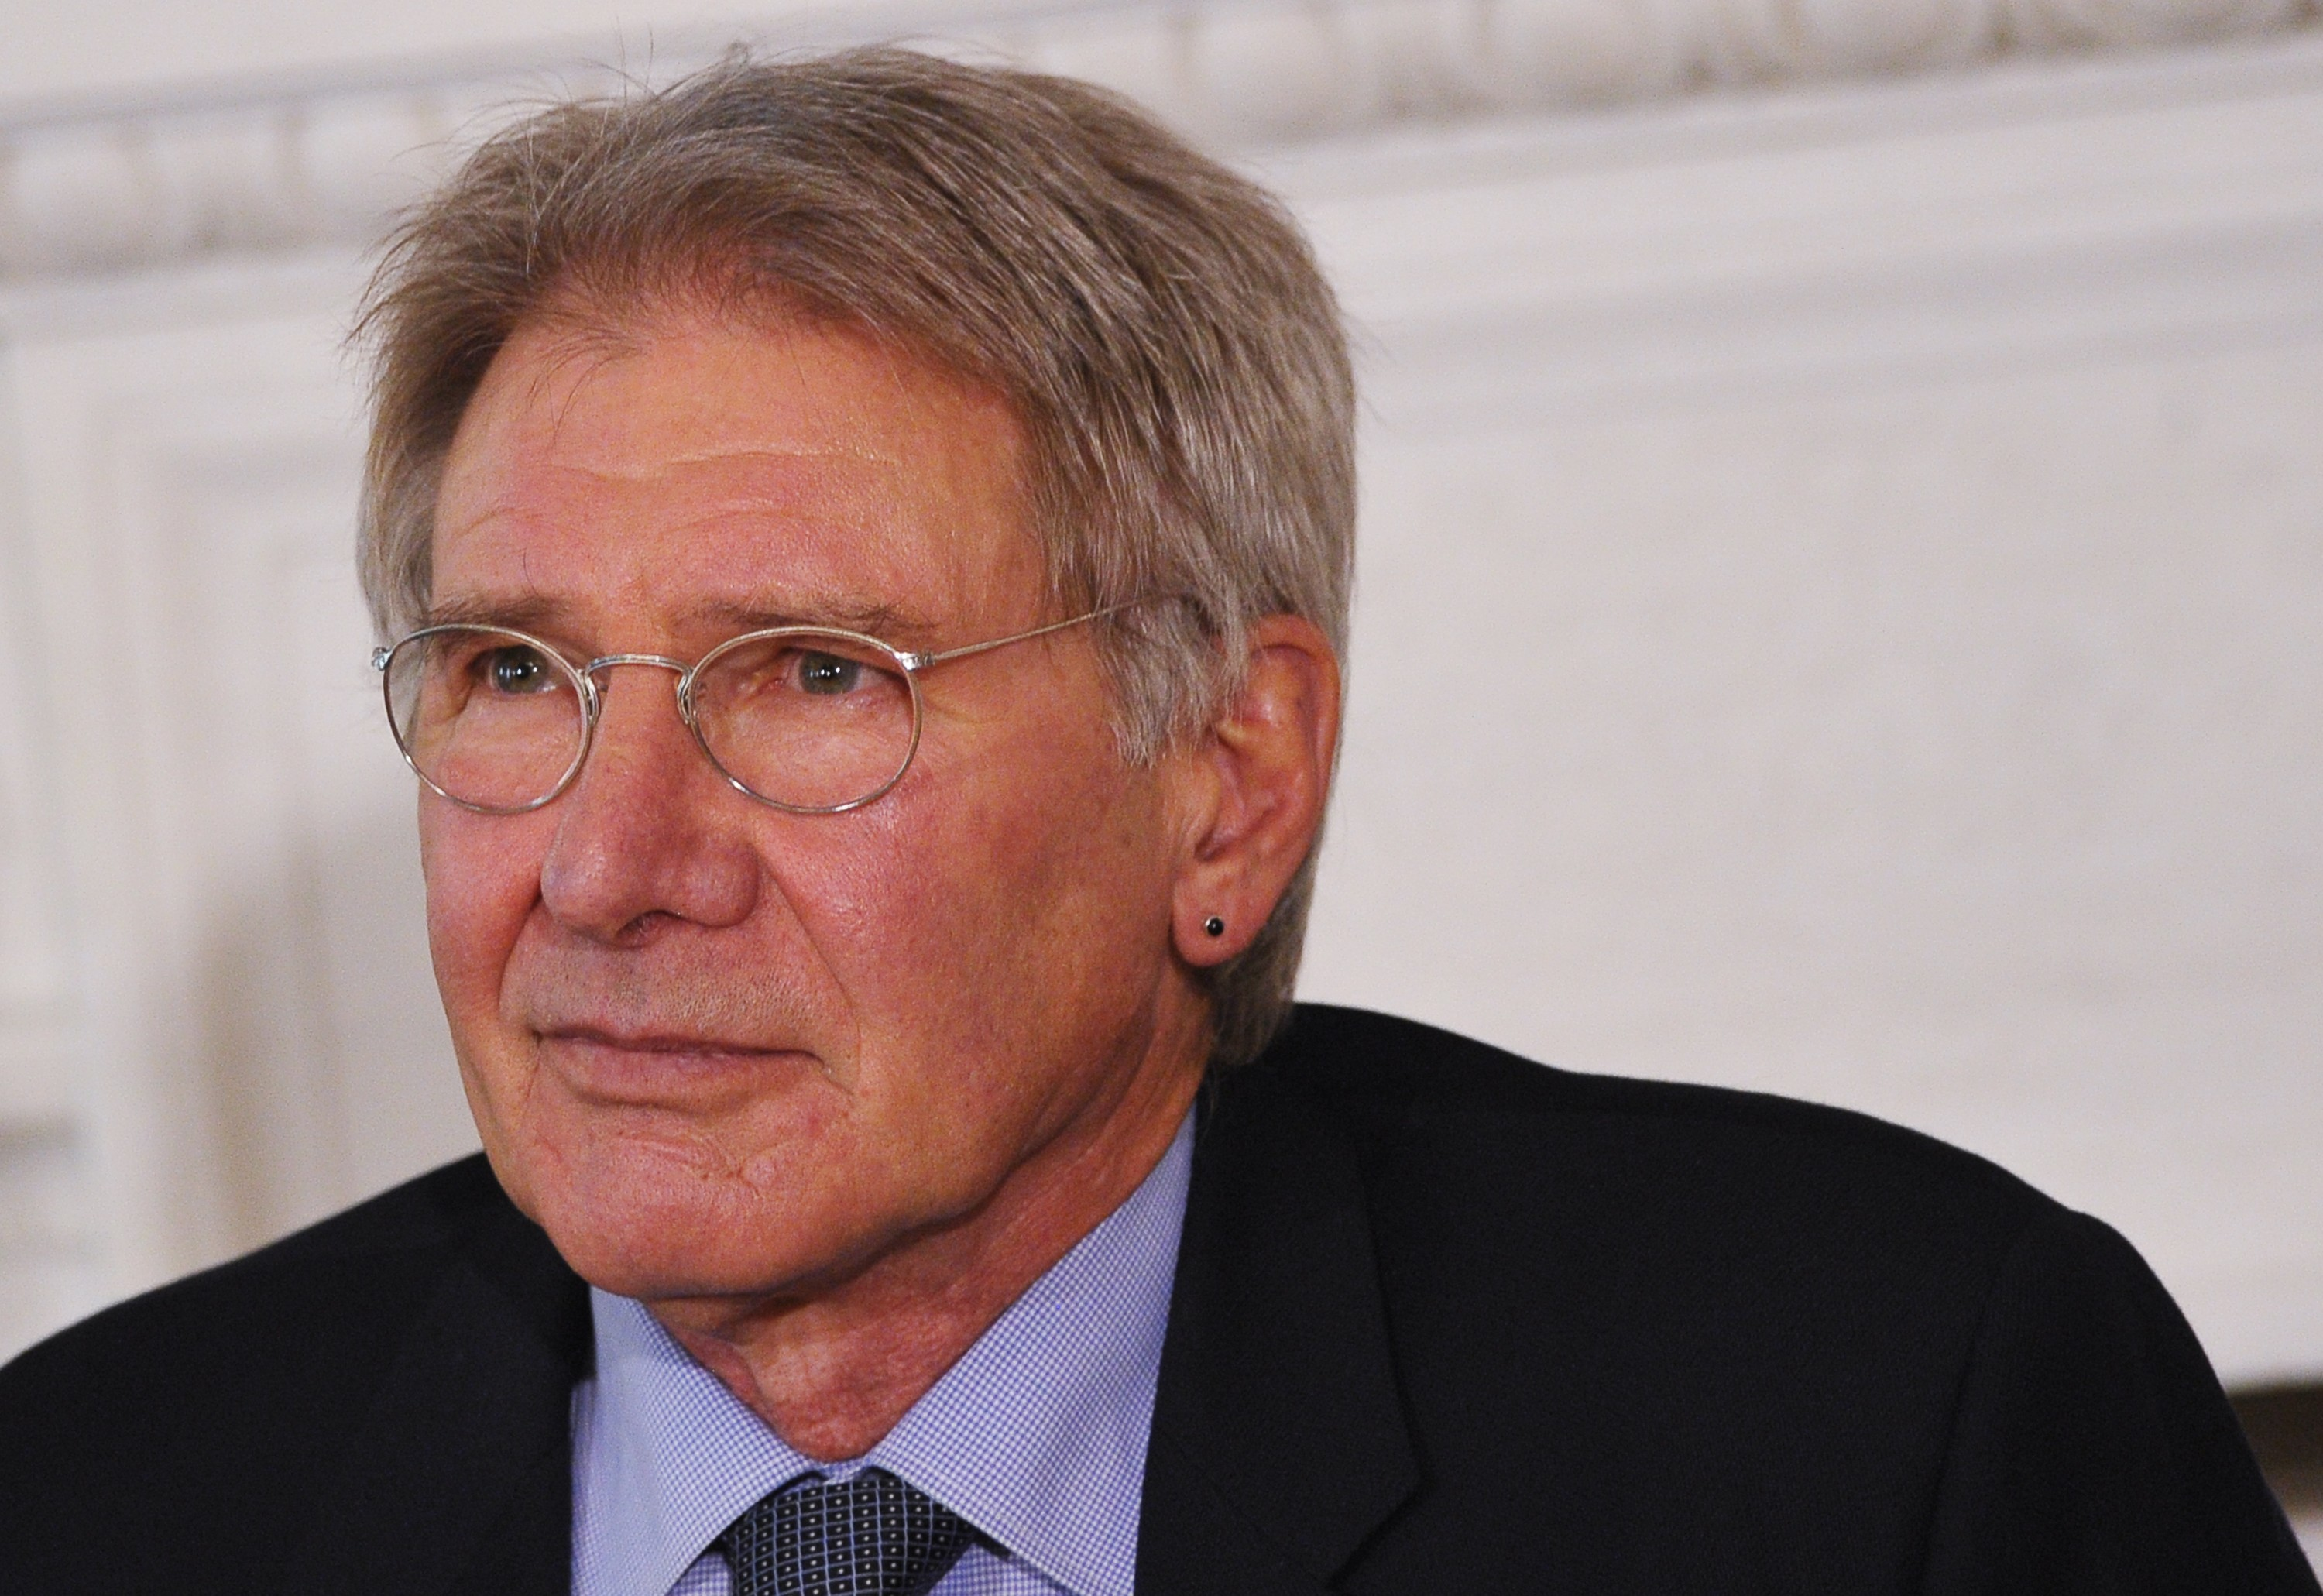 Harrison Ford Is OK After Plane Crash, Confirms Son Ben Ford On Twitter